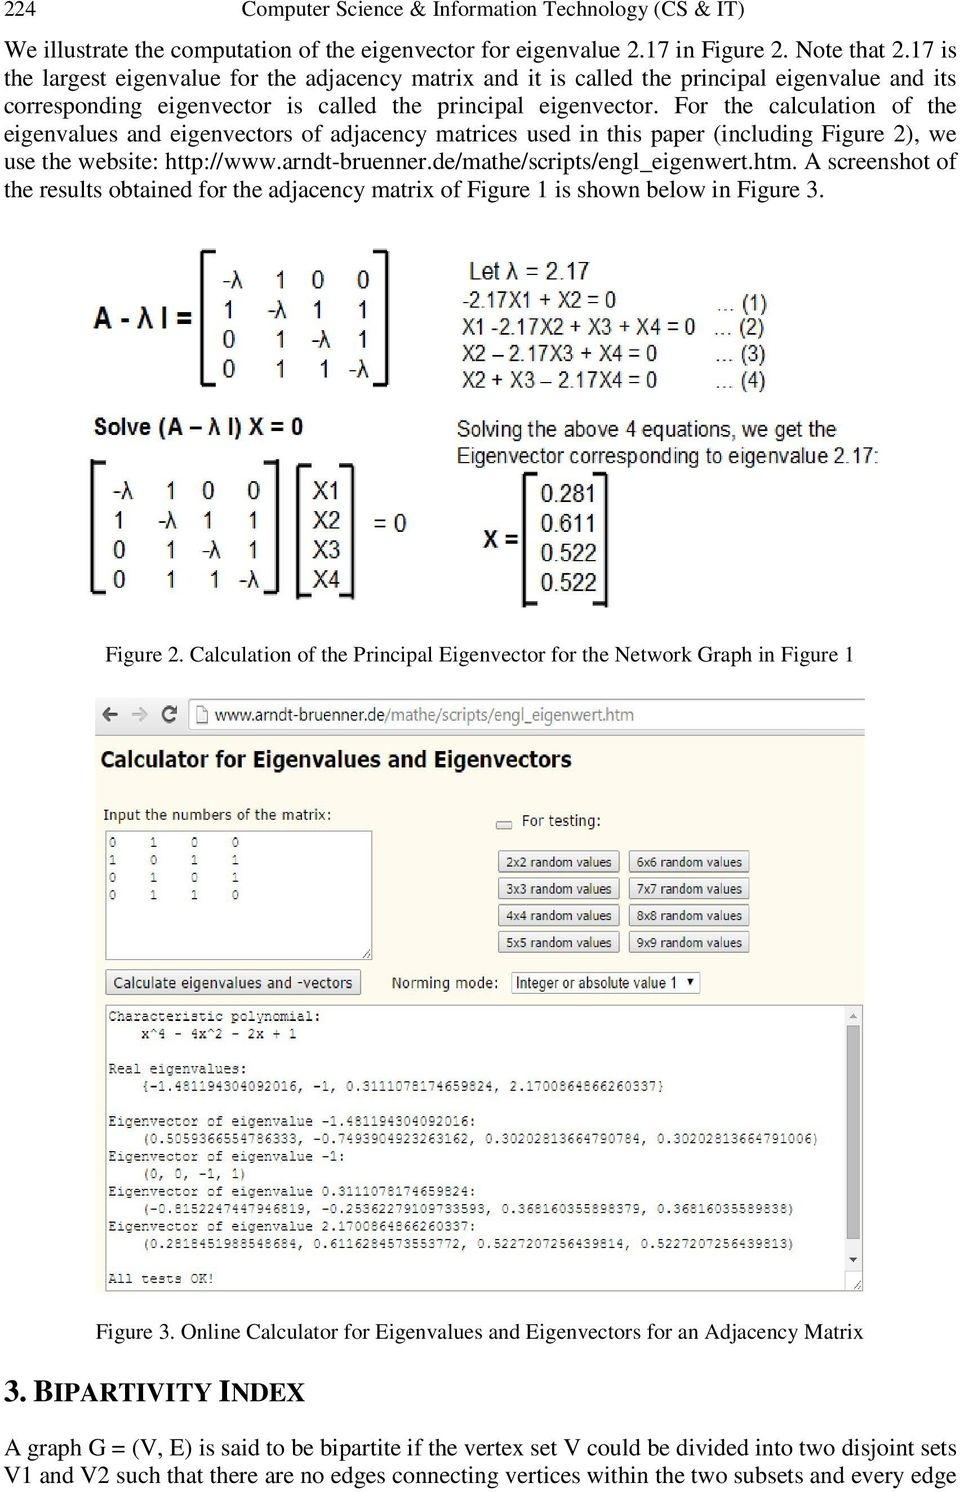 USE OF EIGENVALUES AND EIGENVECTORS TO ANALYZE BIPARTIVITY